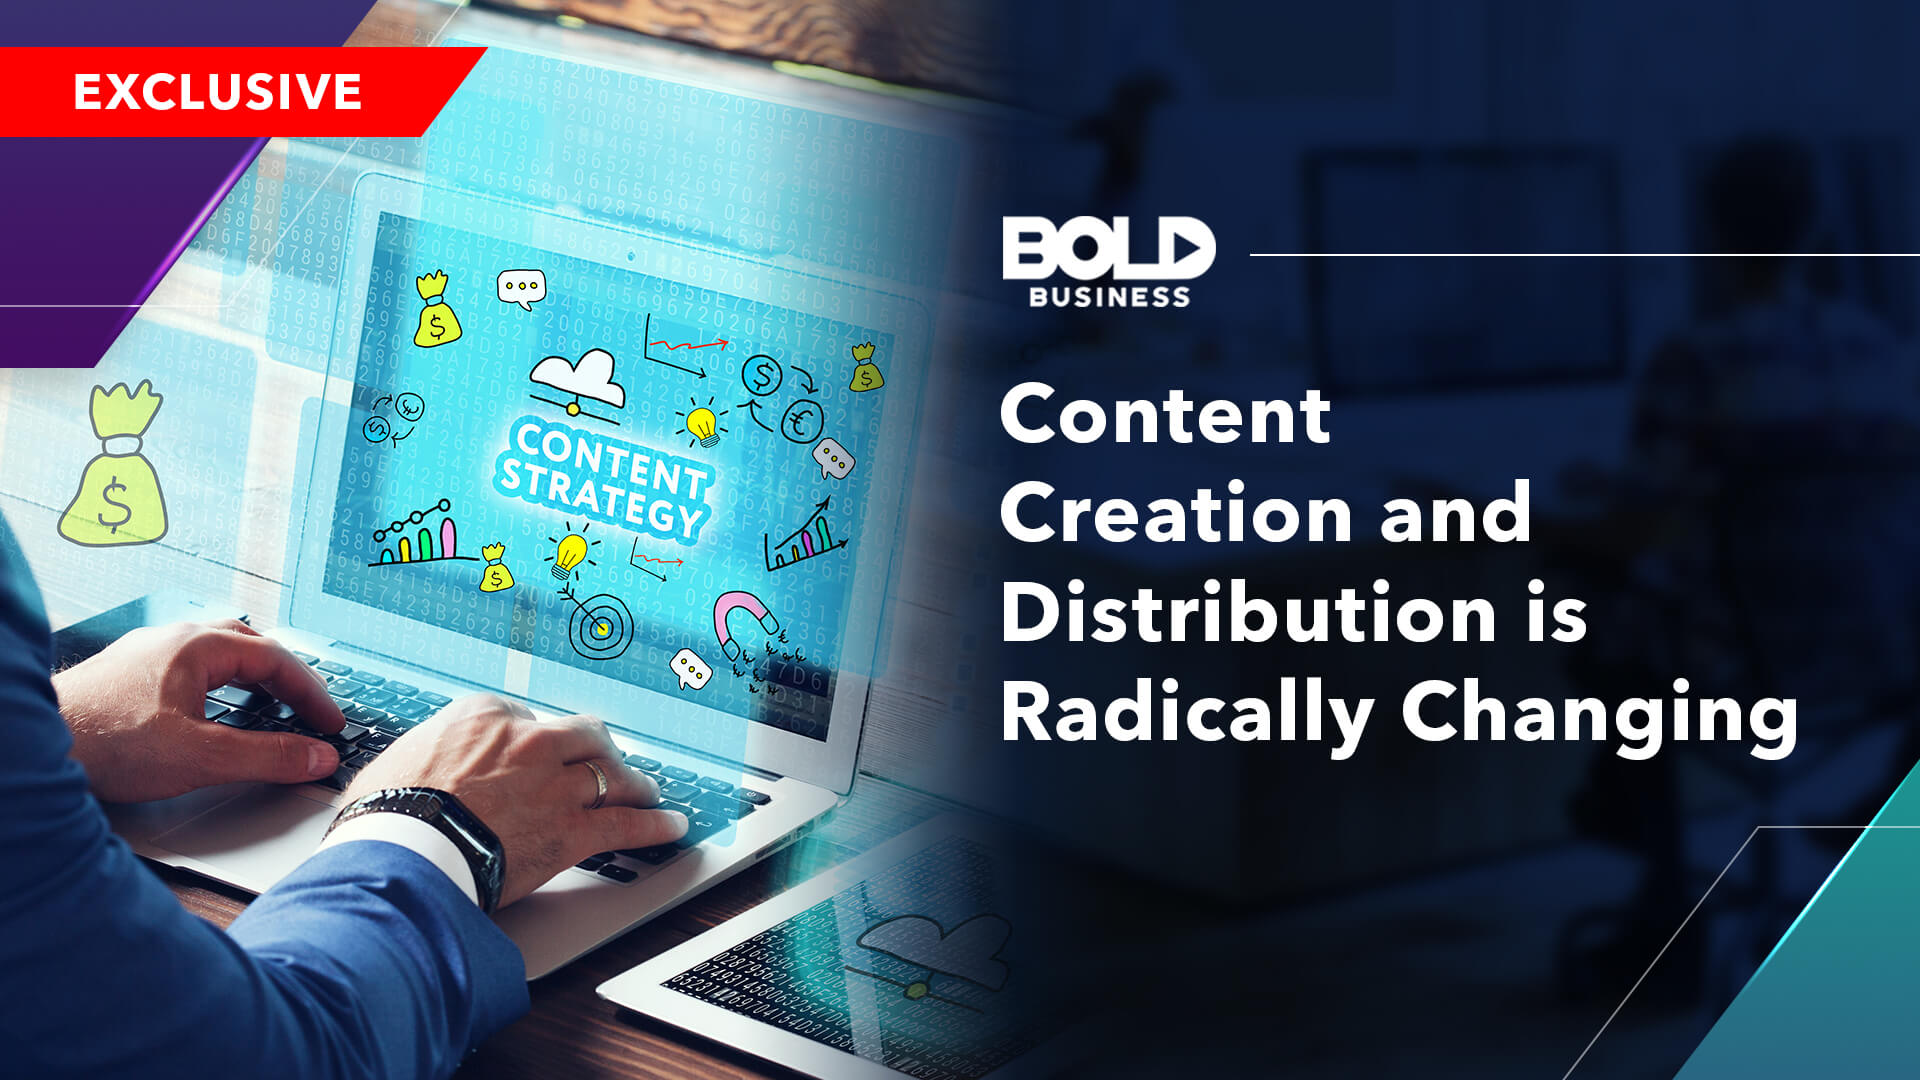 banner image about content creation and distribution is radically changing